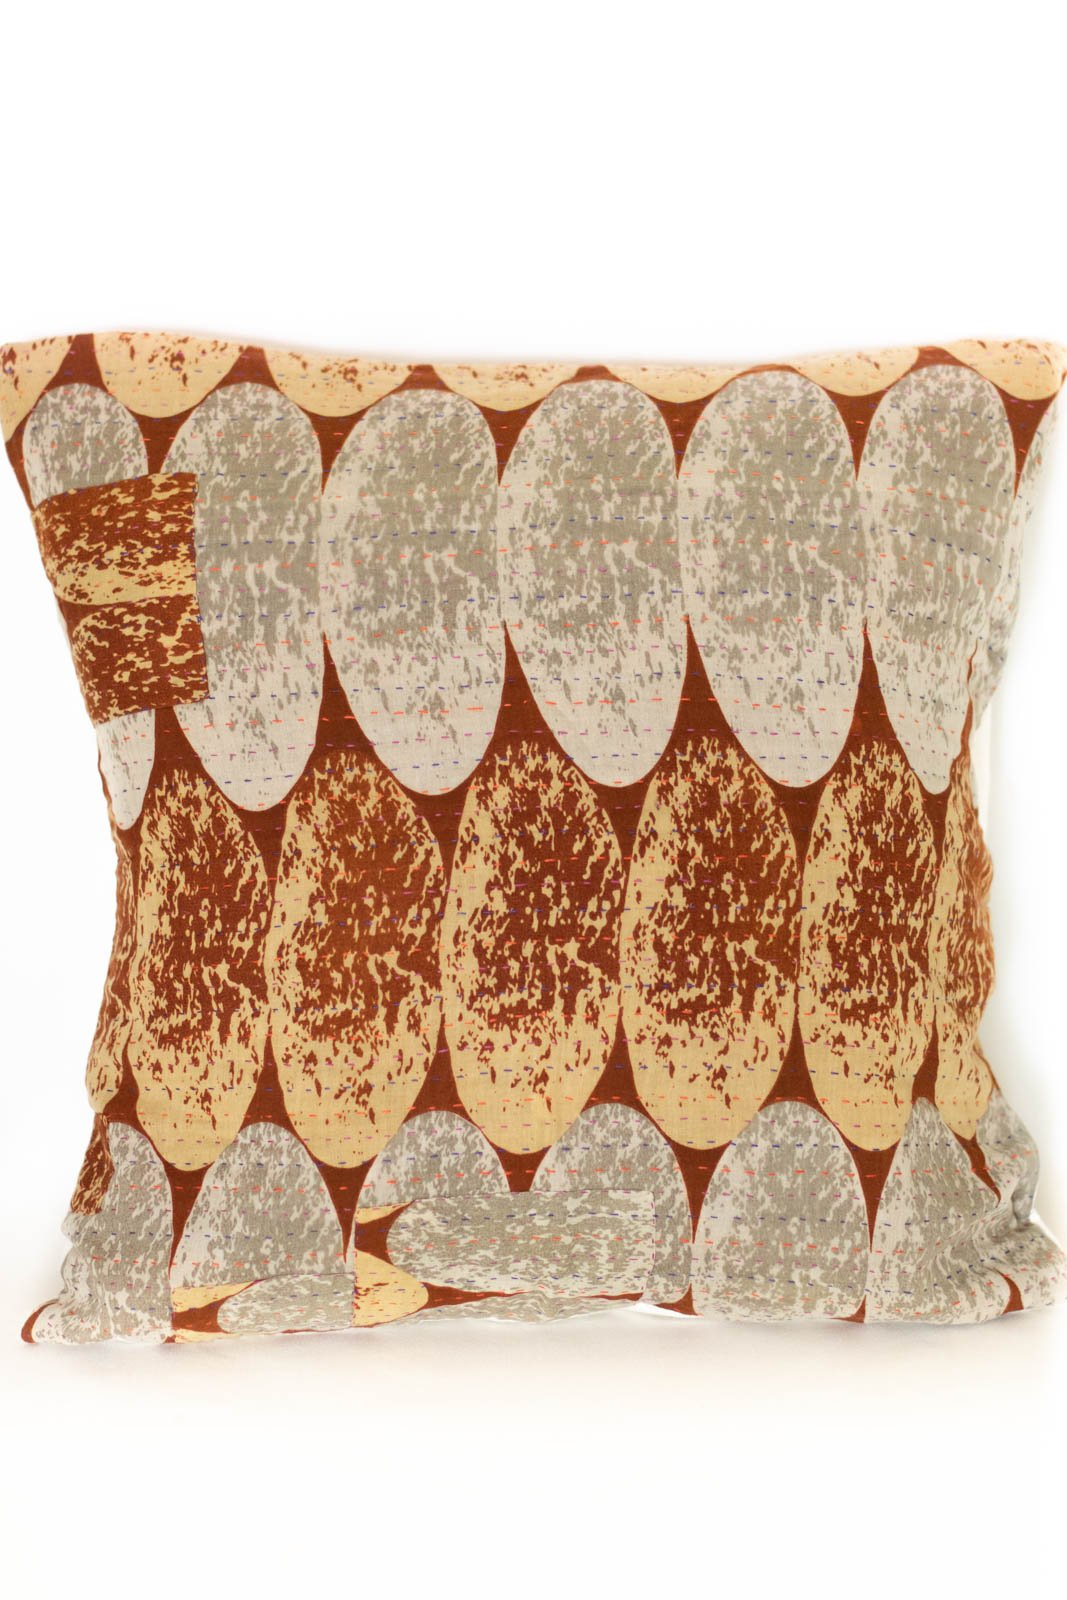 Marvelous no. 7 Kantha Pillow Cover